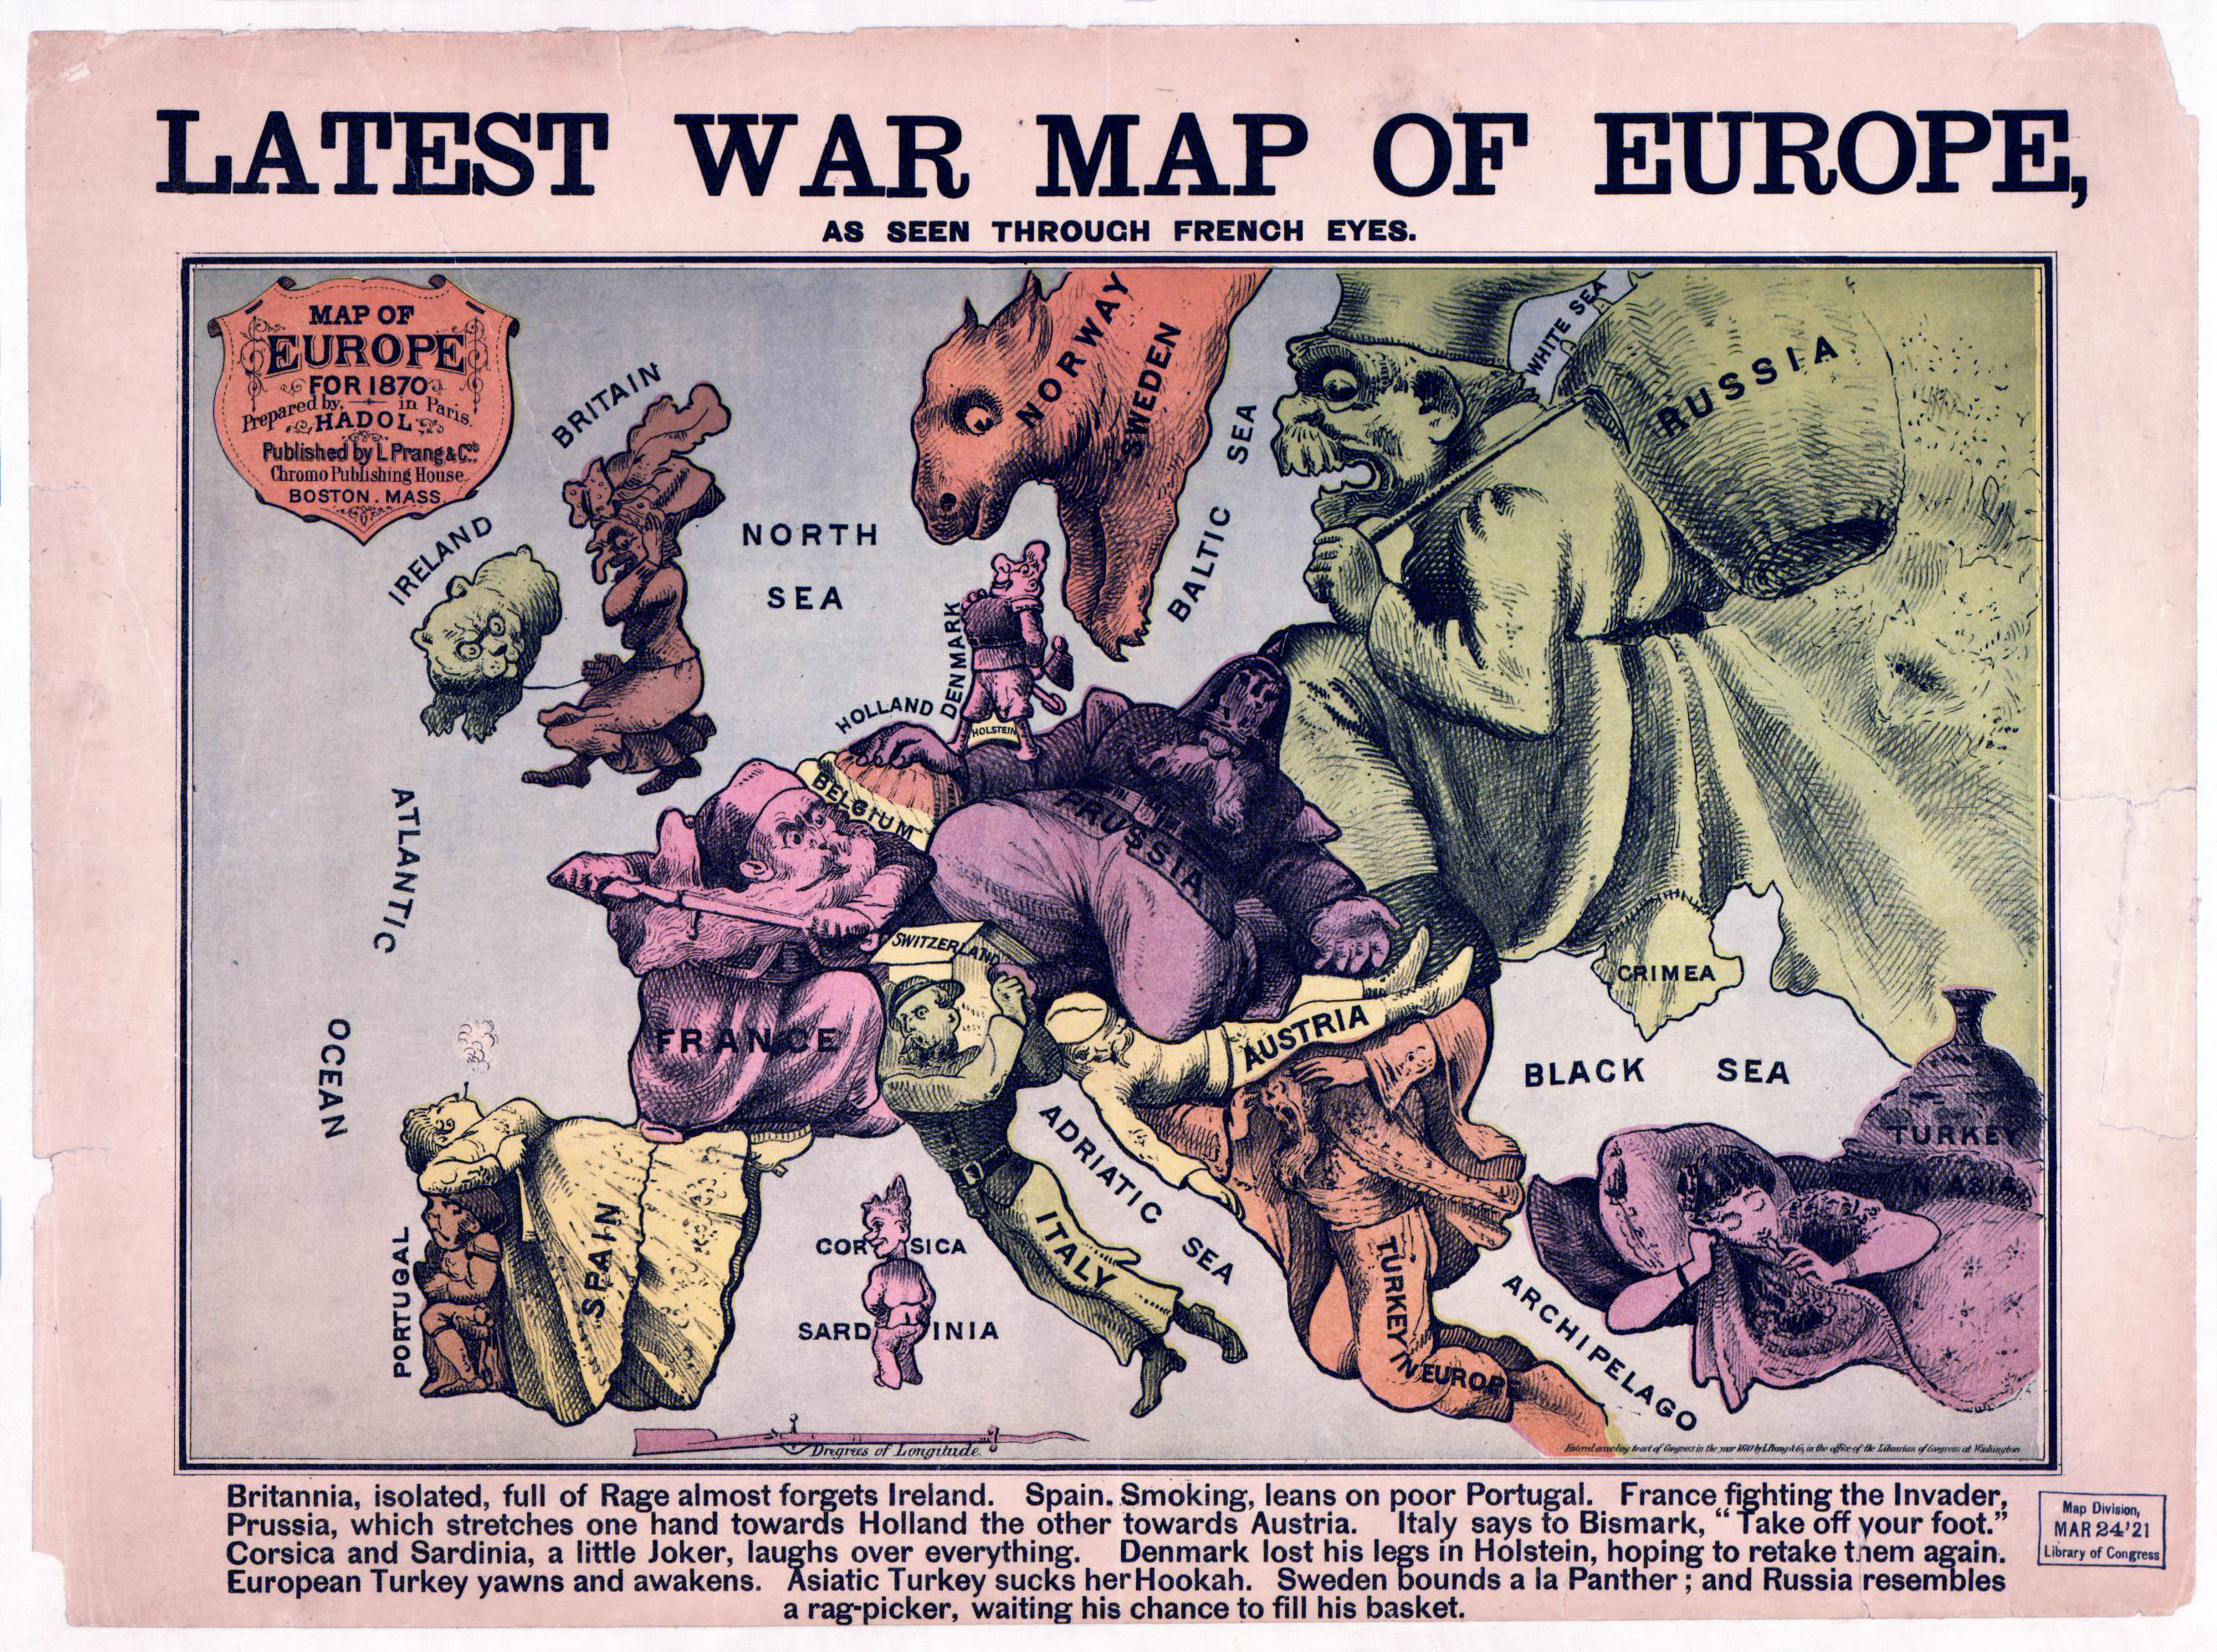 map of europe 1875 Large detailed Latest War map of Europe   1835 1875 | Old maps of